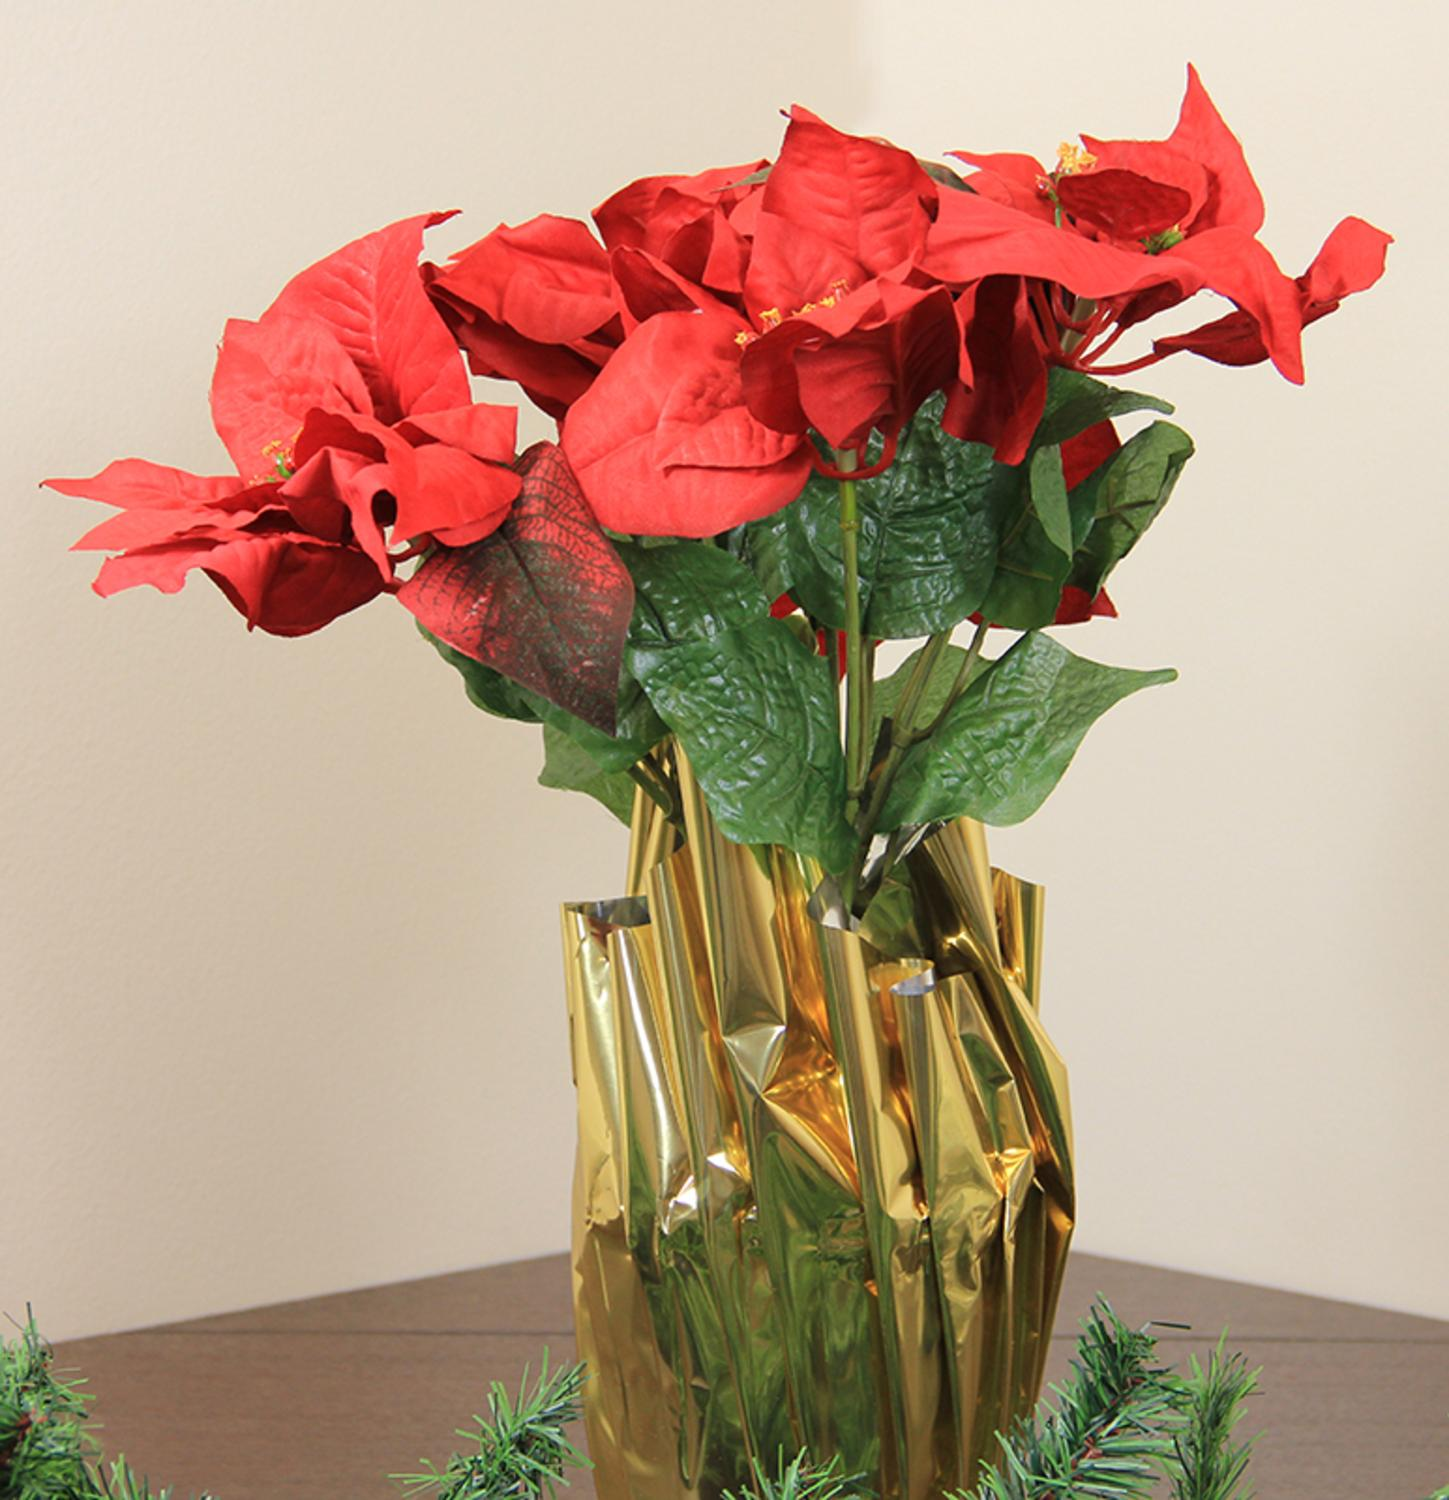 "24"" Red Artificial Poinsettia Potted Christmas Plant with Gold Foil Covering"